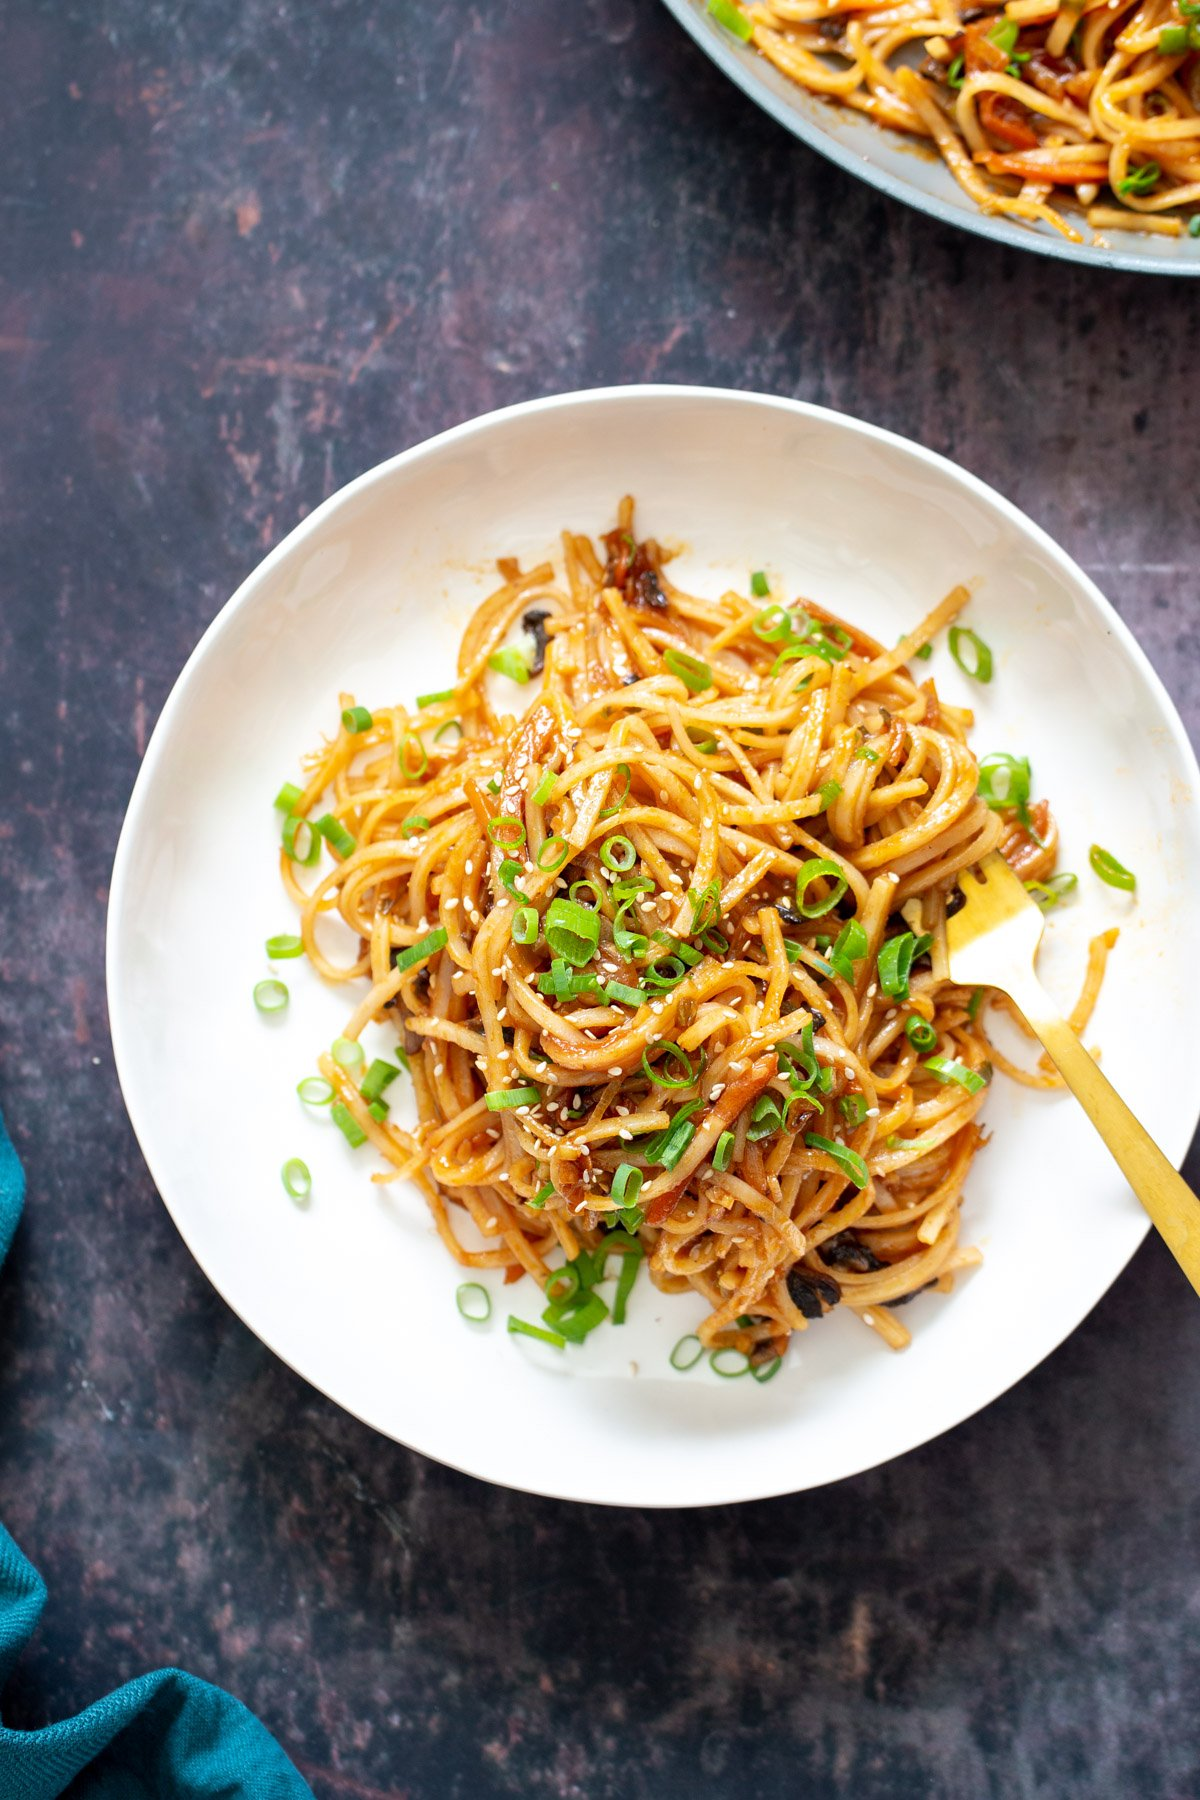 a plate of Korean Gochujang Noodles served topped with sesame seeds and sliced spring onion